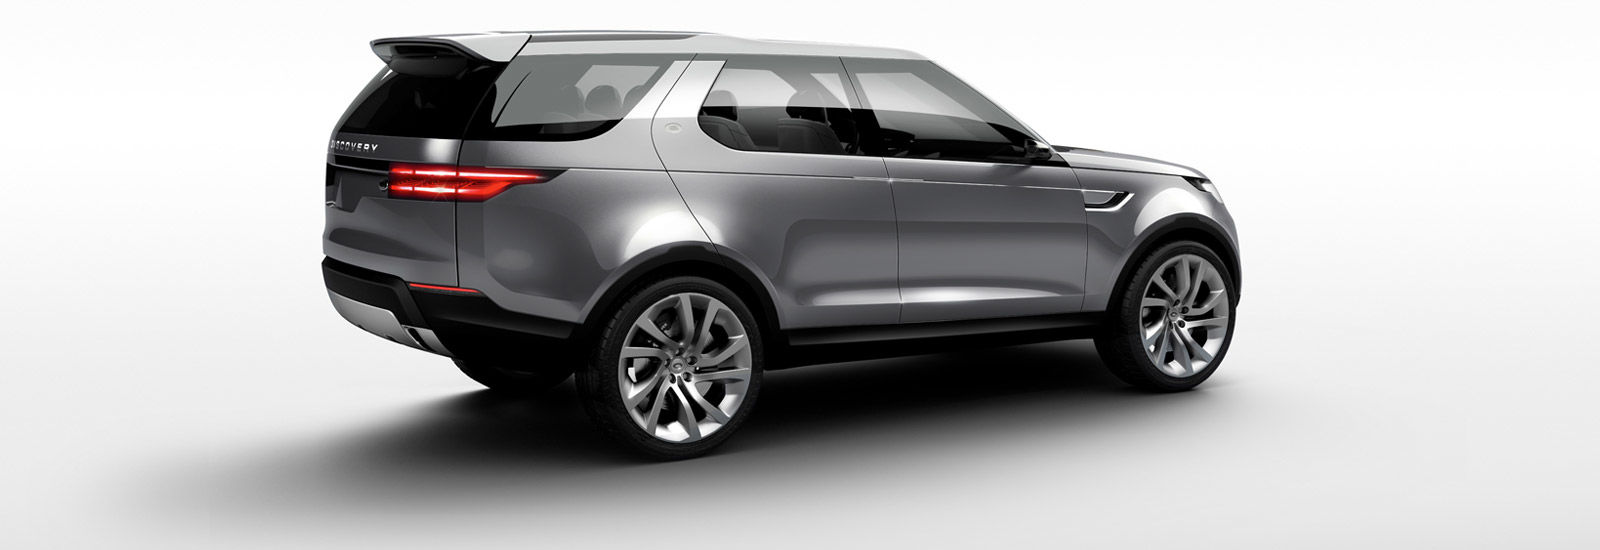 2017 land rover discovery 5 price specs release date carwow. Black Bedroom Furniture Sets. Home Design Ideas